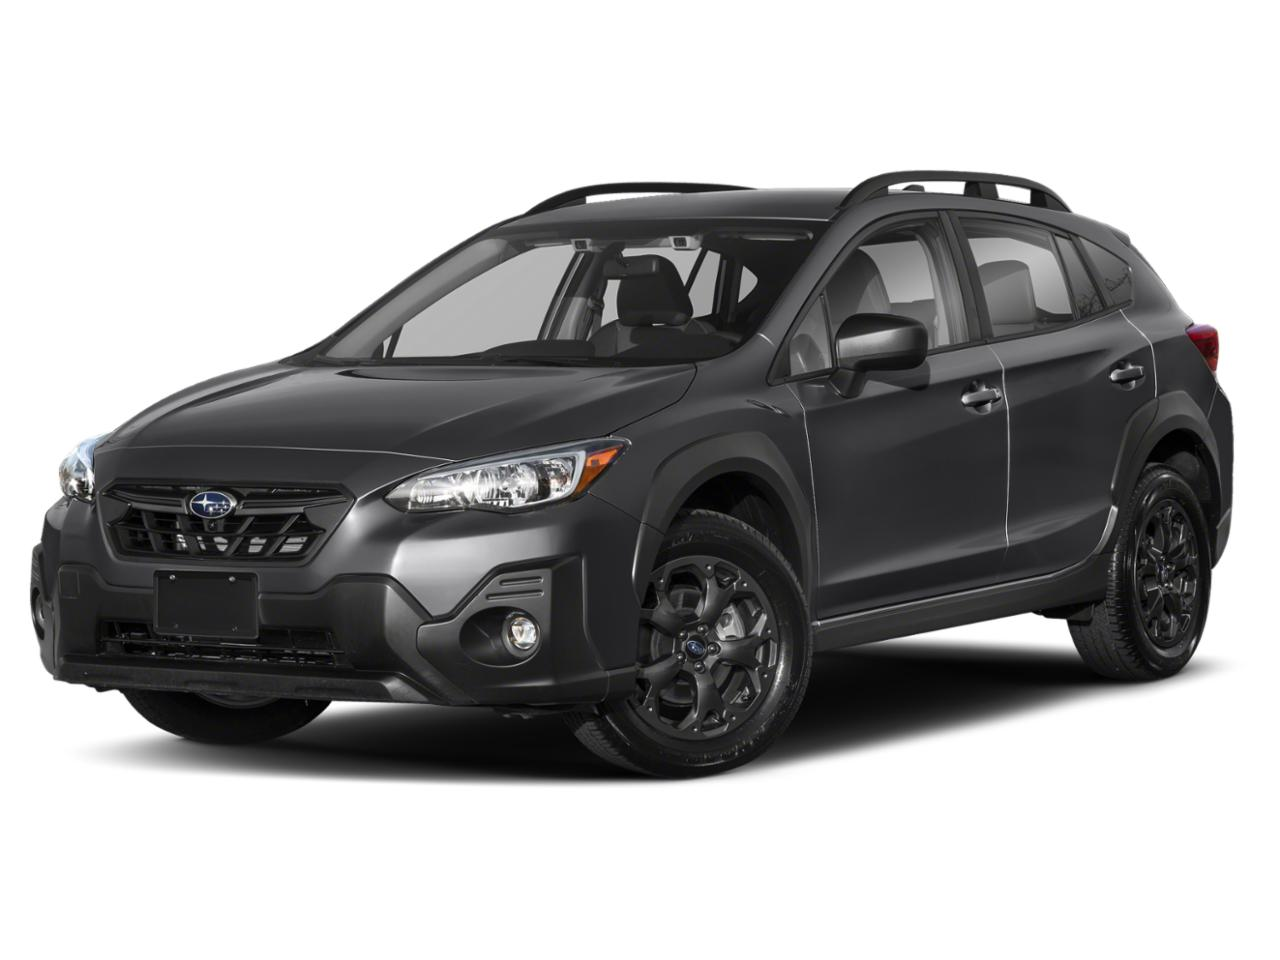 2021 Subaru Crosstrek Vehicle Photo in Casper, WY 82609